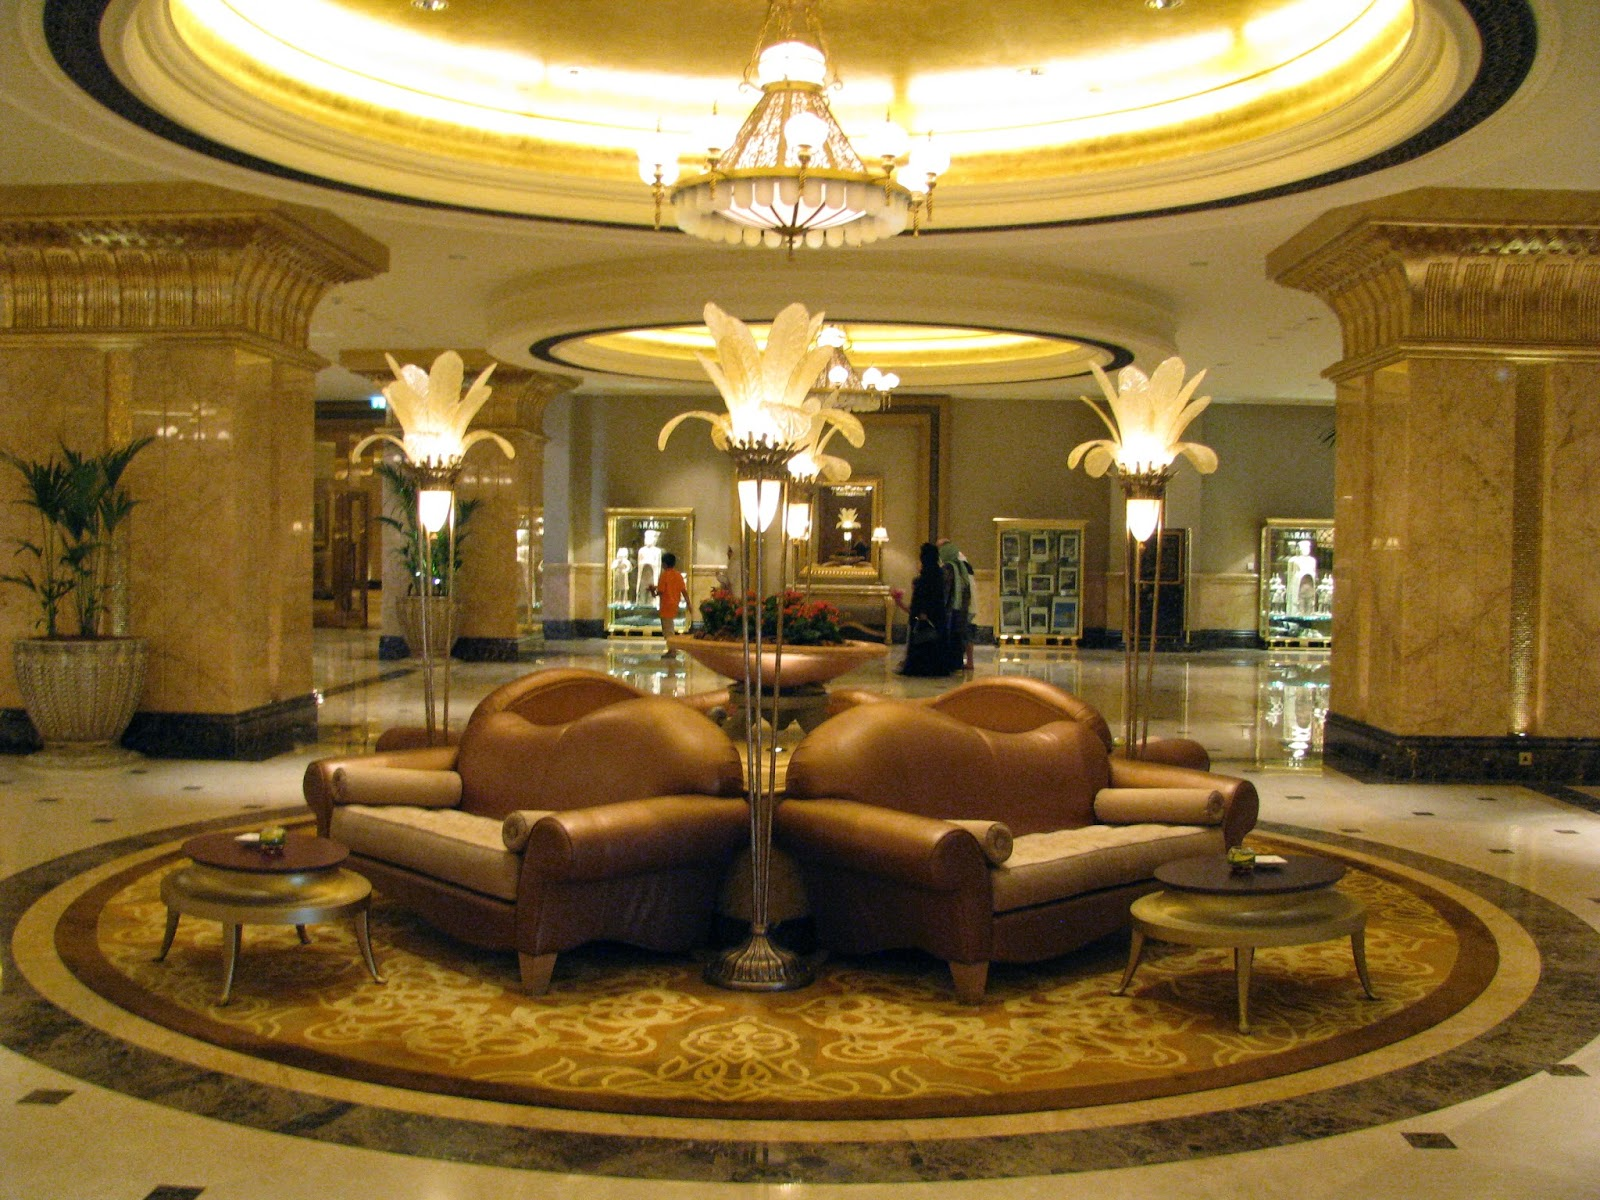 Interiors Of Emirates Palace Abu Dhabi Interior Design